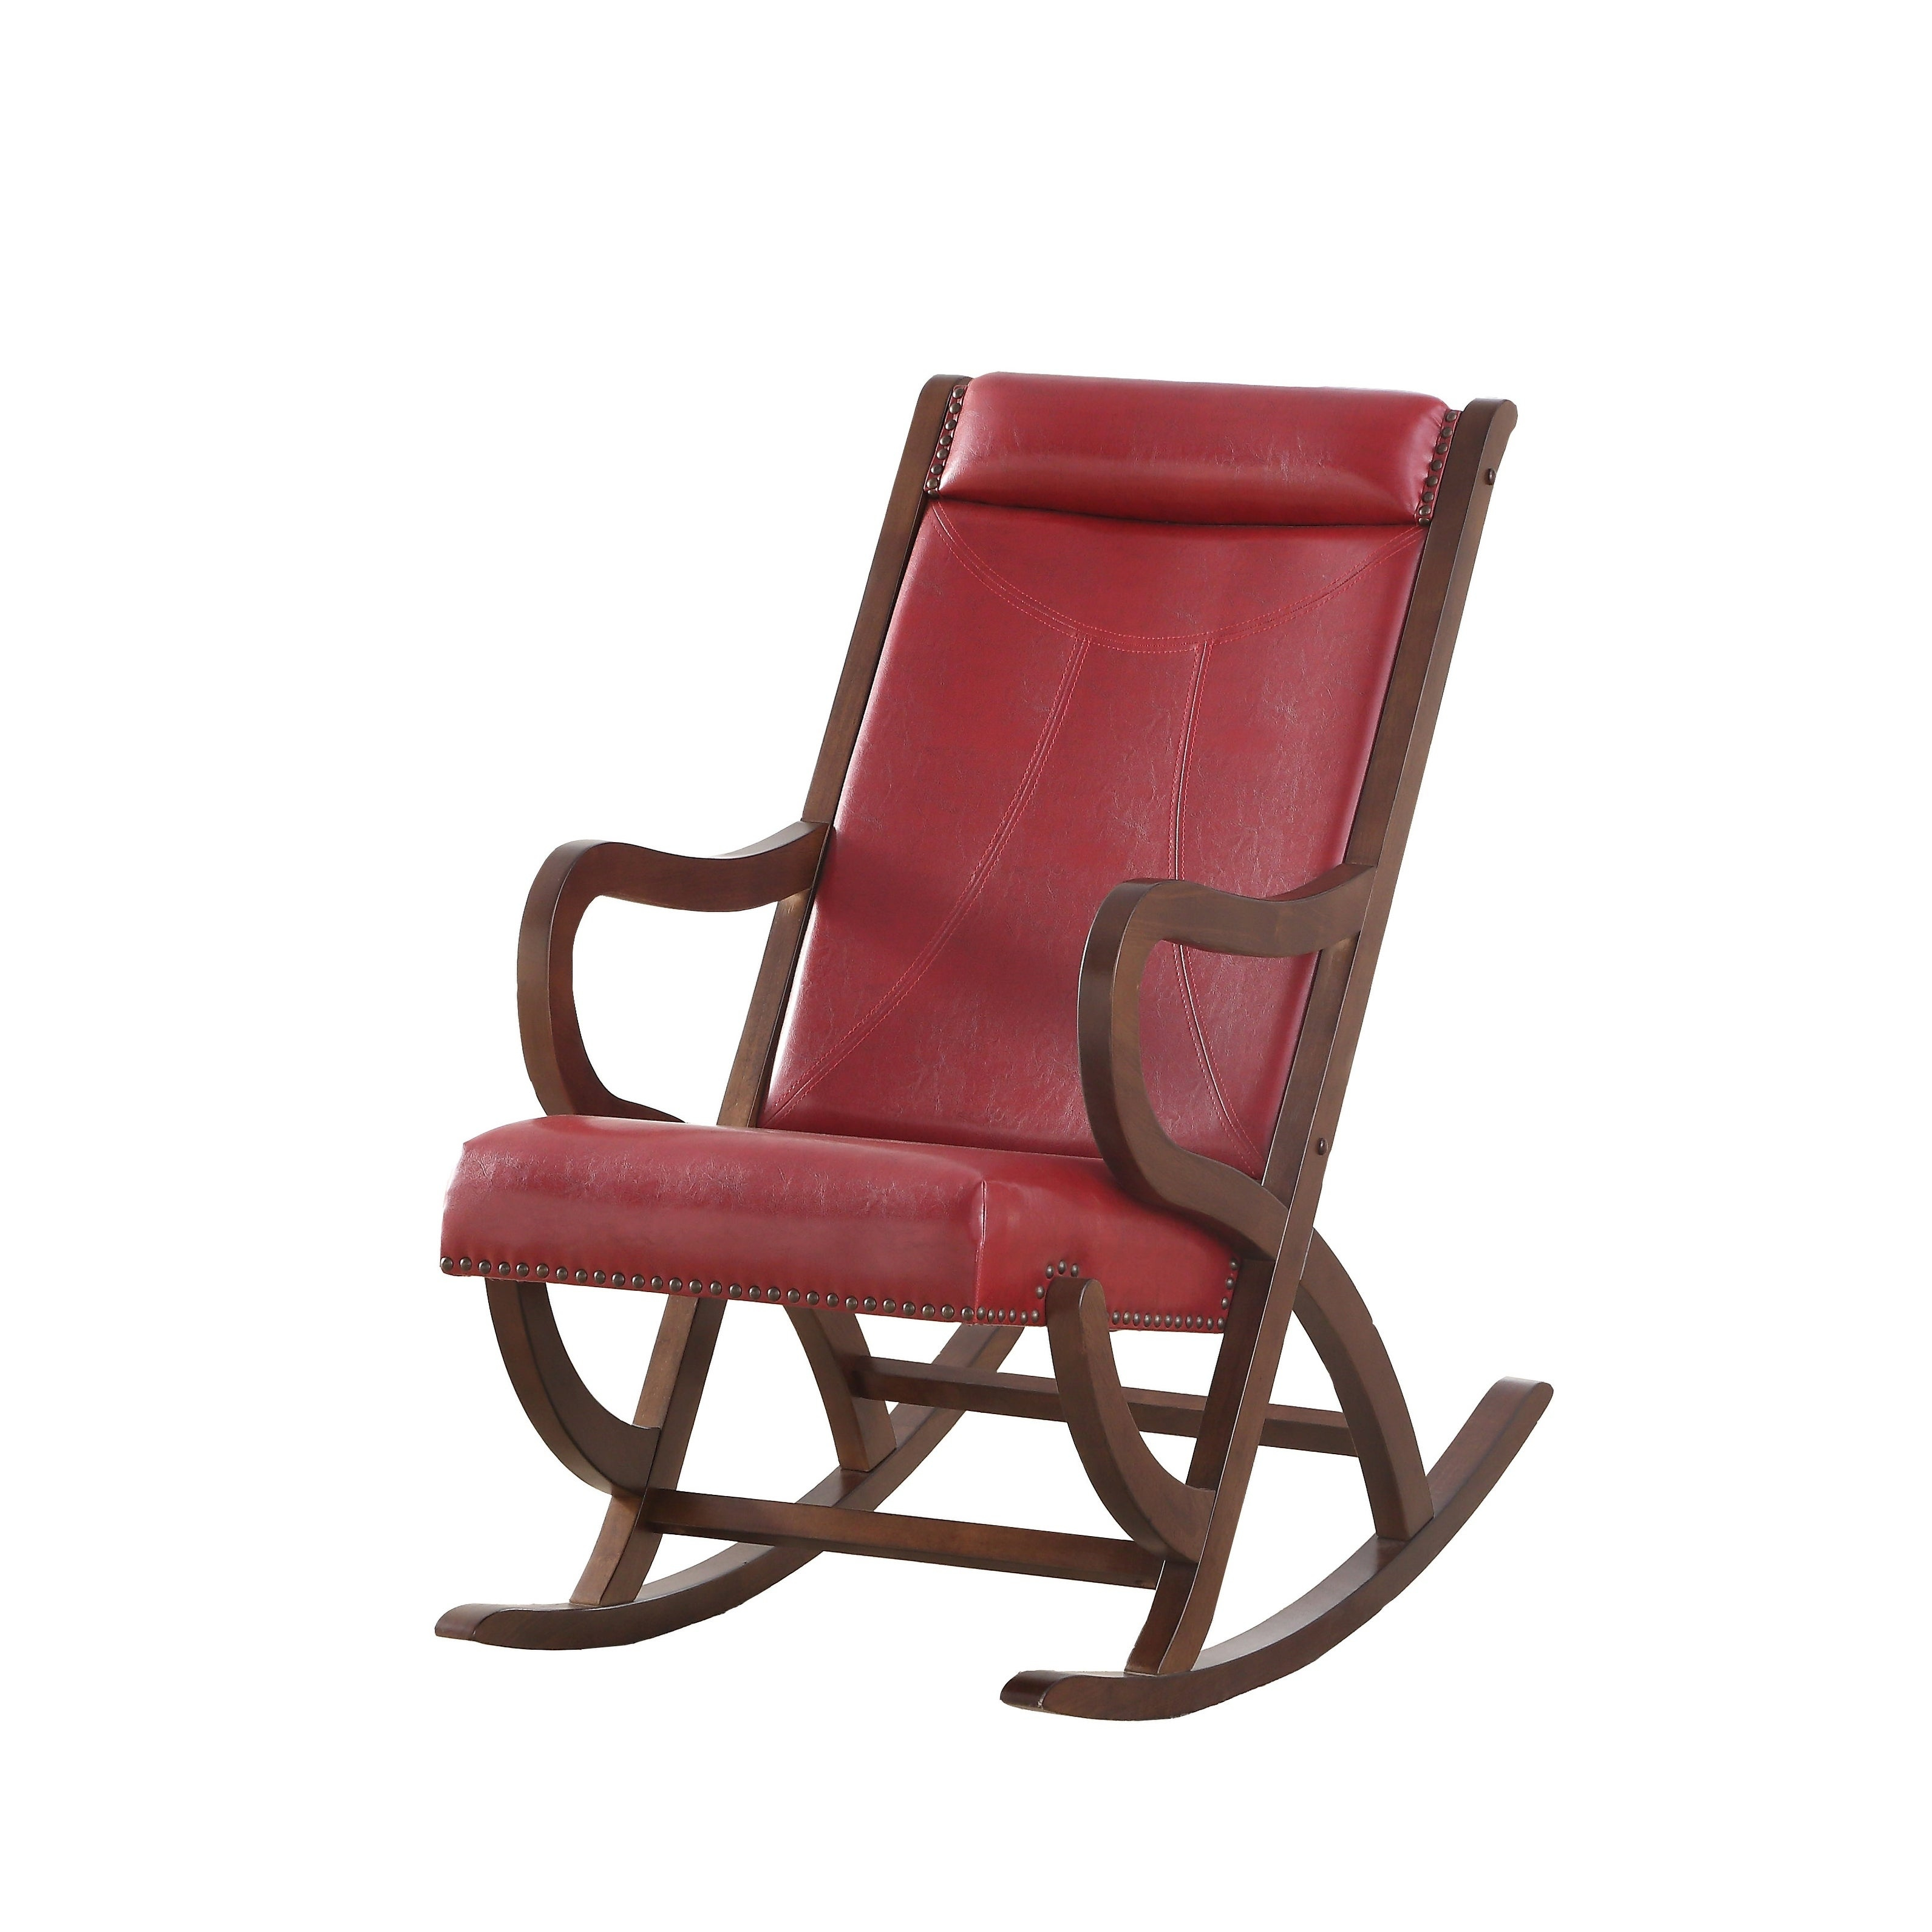 Carbon Loft Ariel Rocking Chair In Burgundy Pu And Walnut Throughout Liverpool Classic Style Rocking Chairs In Antique Oak Finish (#8 of 20)